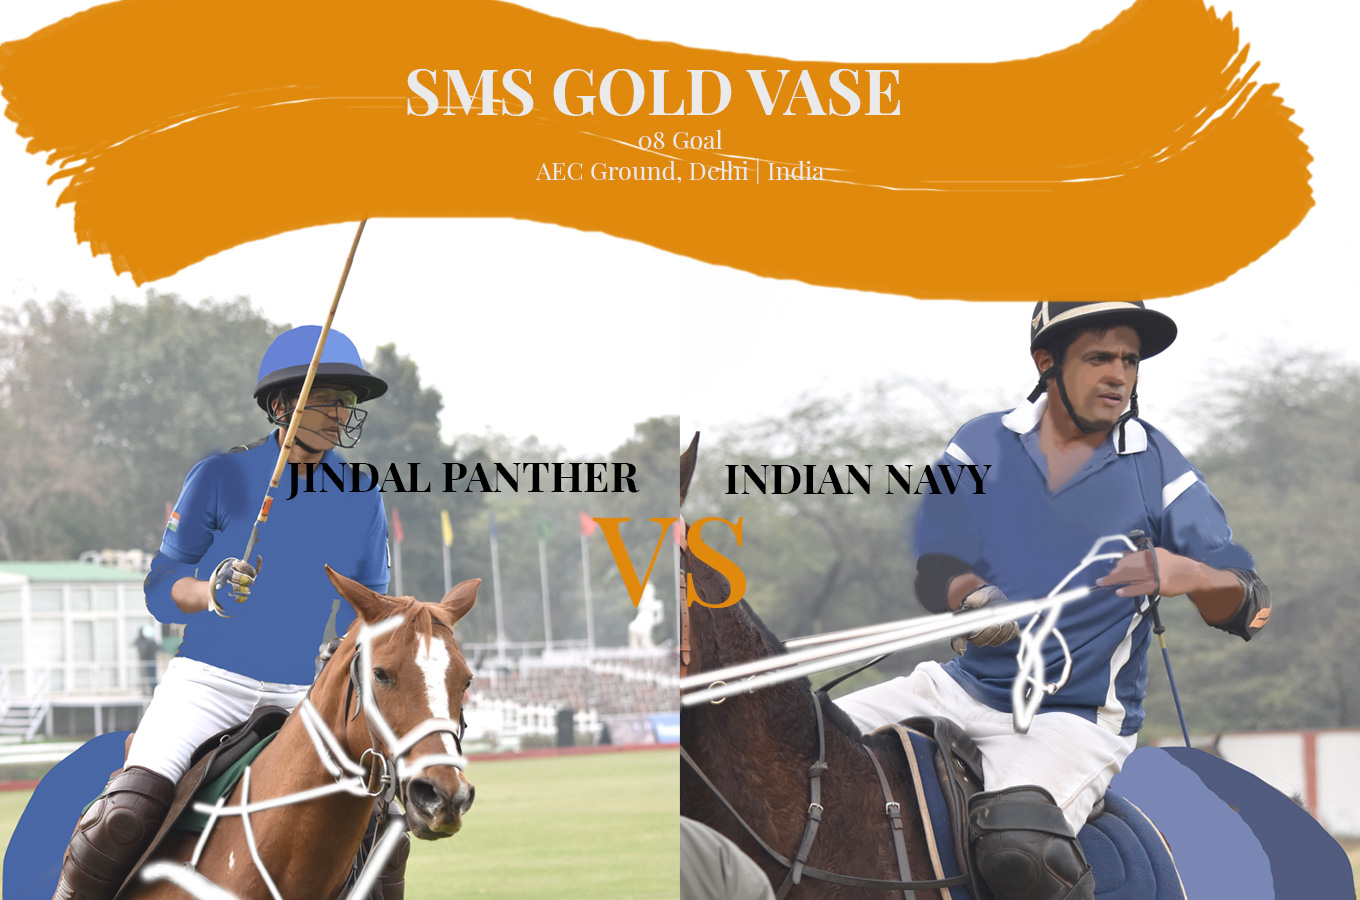 SMS Gold Vase Cup 2019